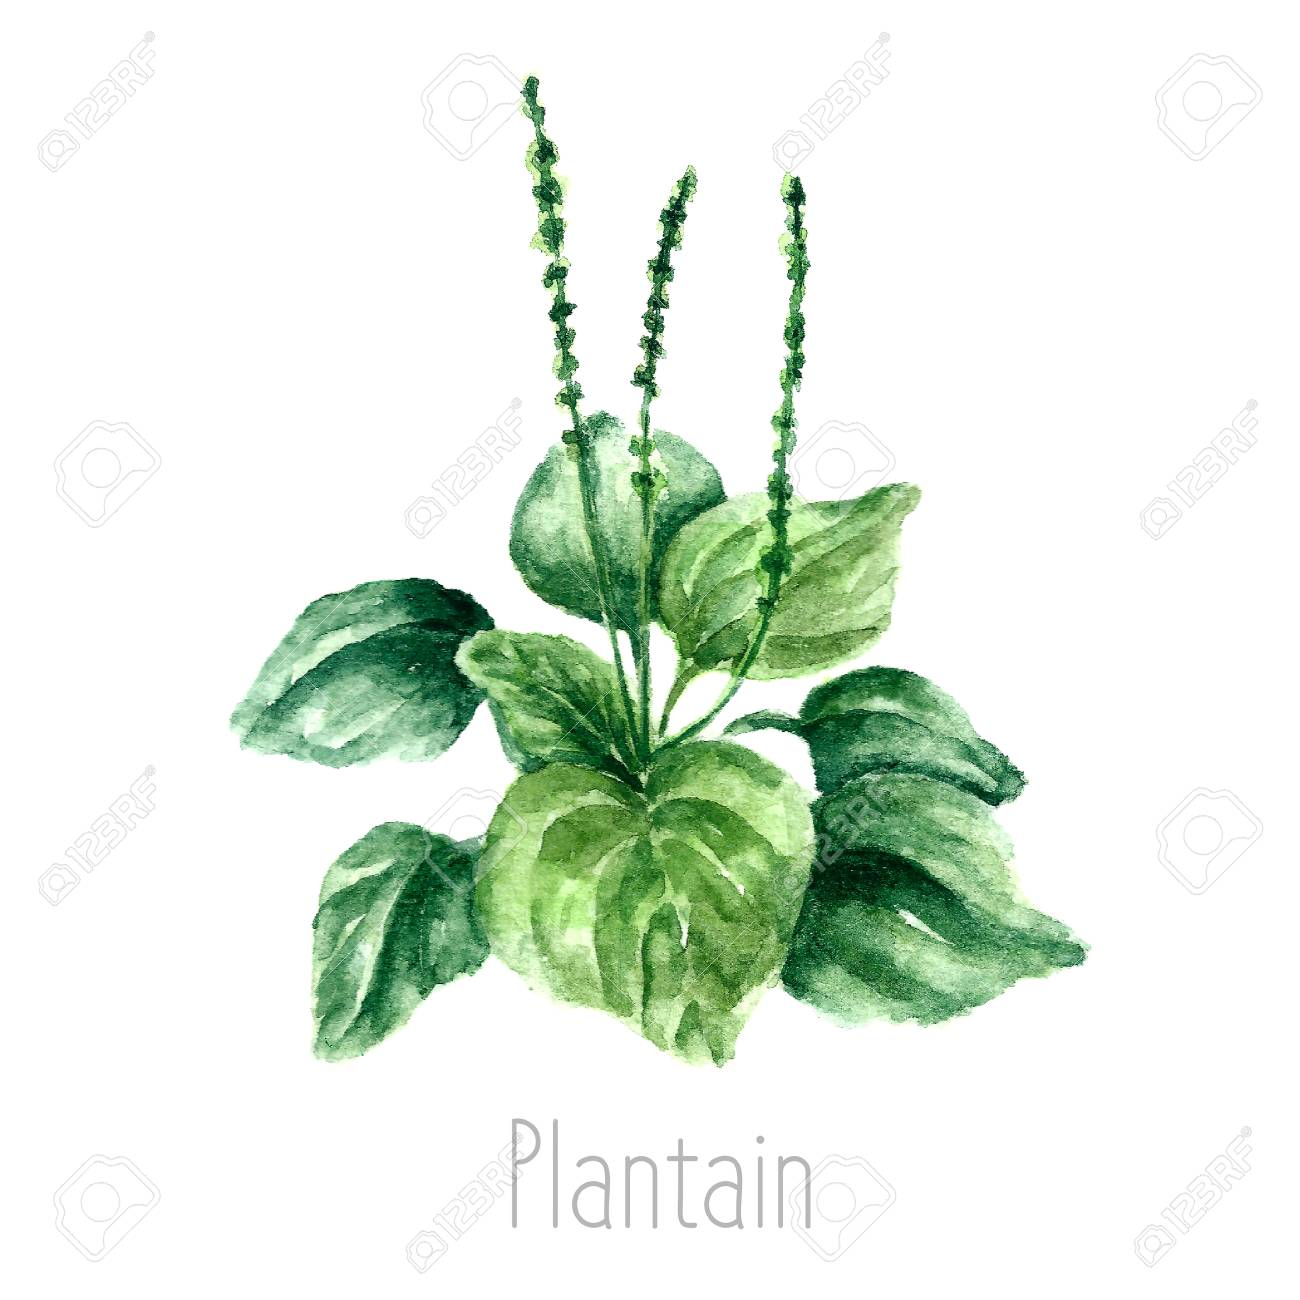 1300x1300 Hand Drawn Watercolor Botanical Illustration Of The Plantain